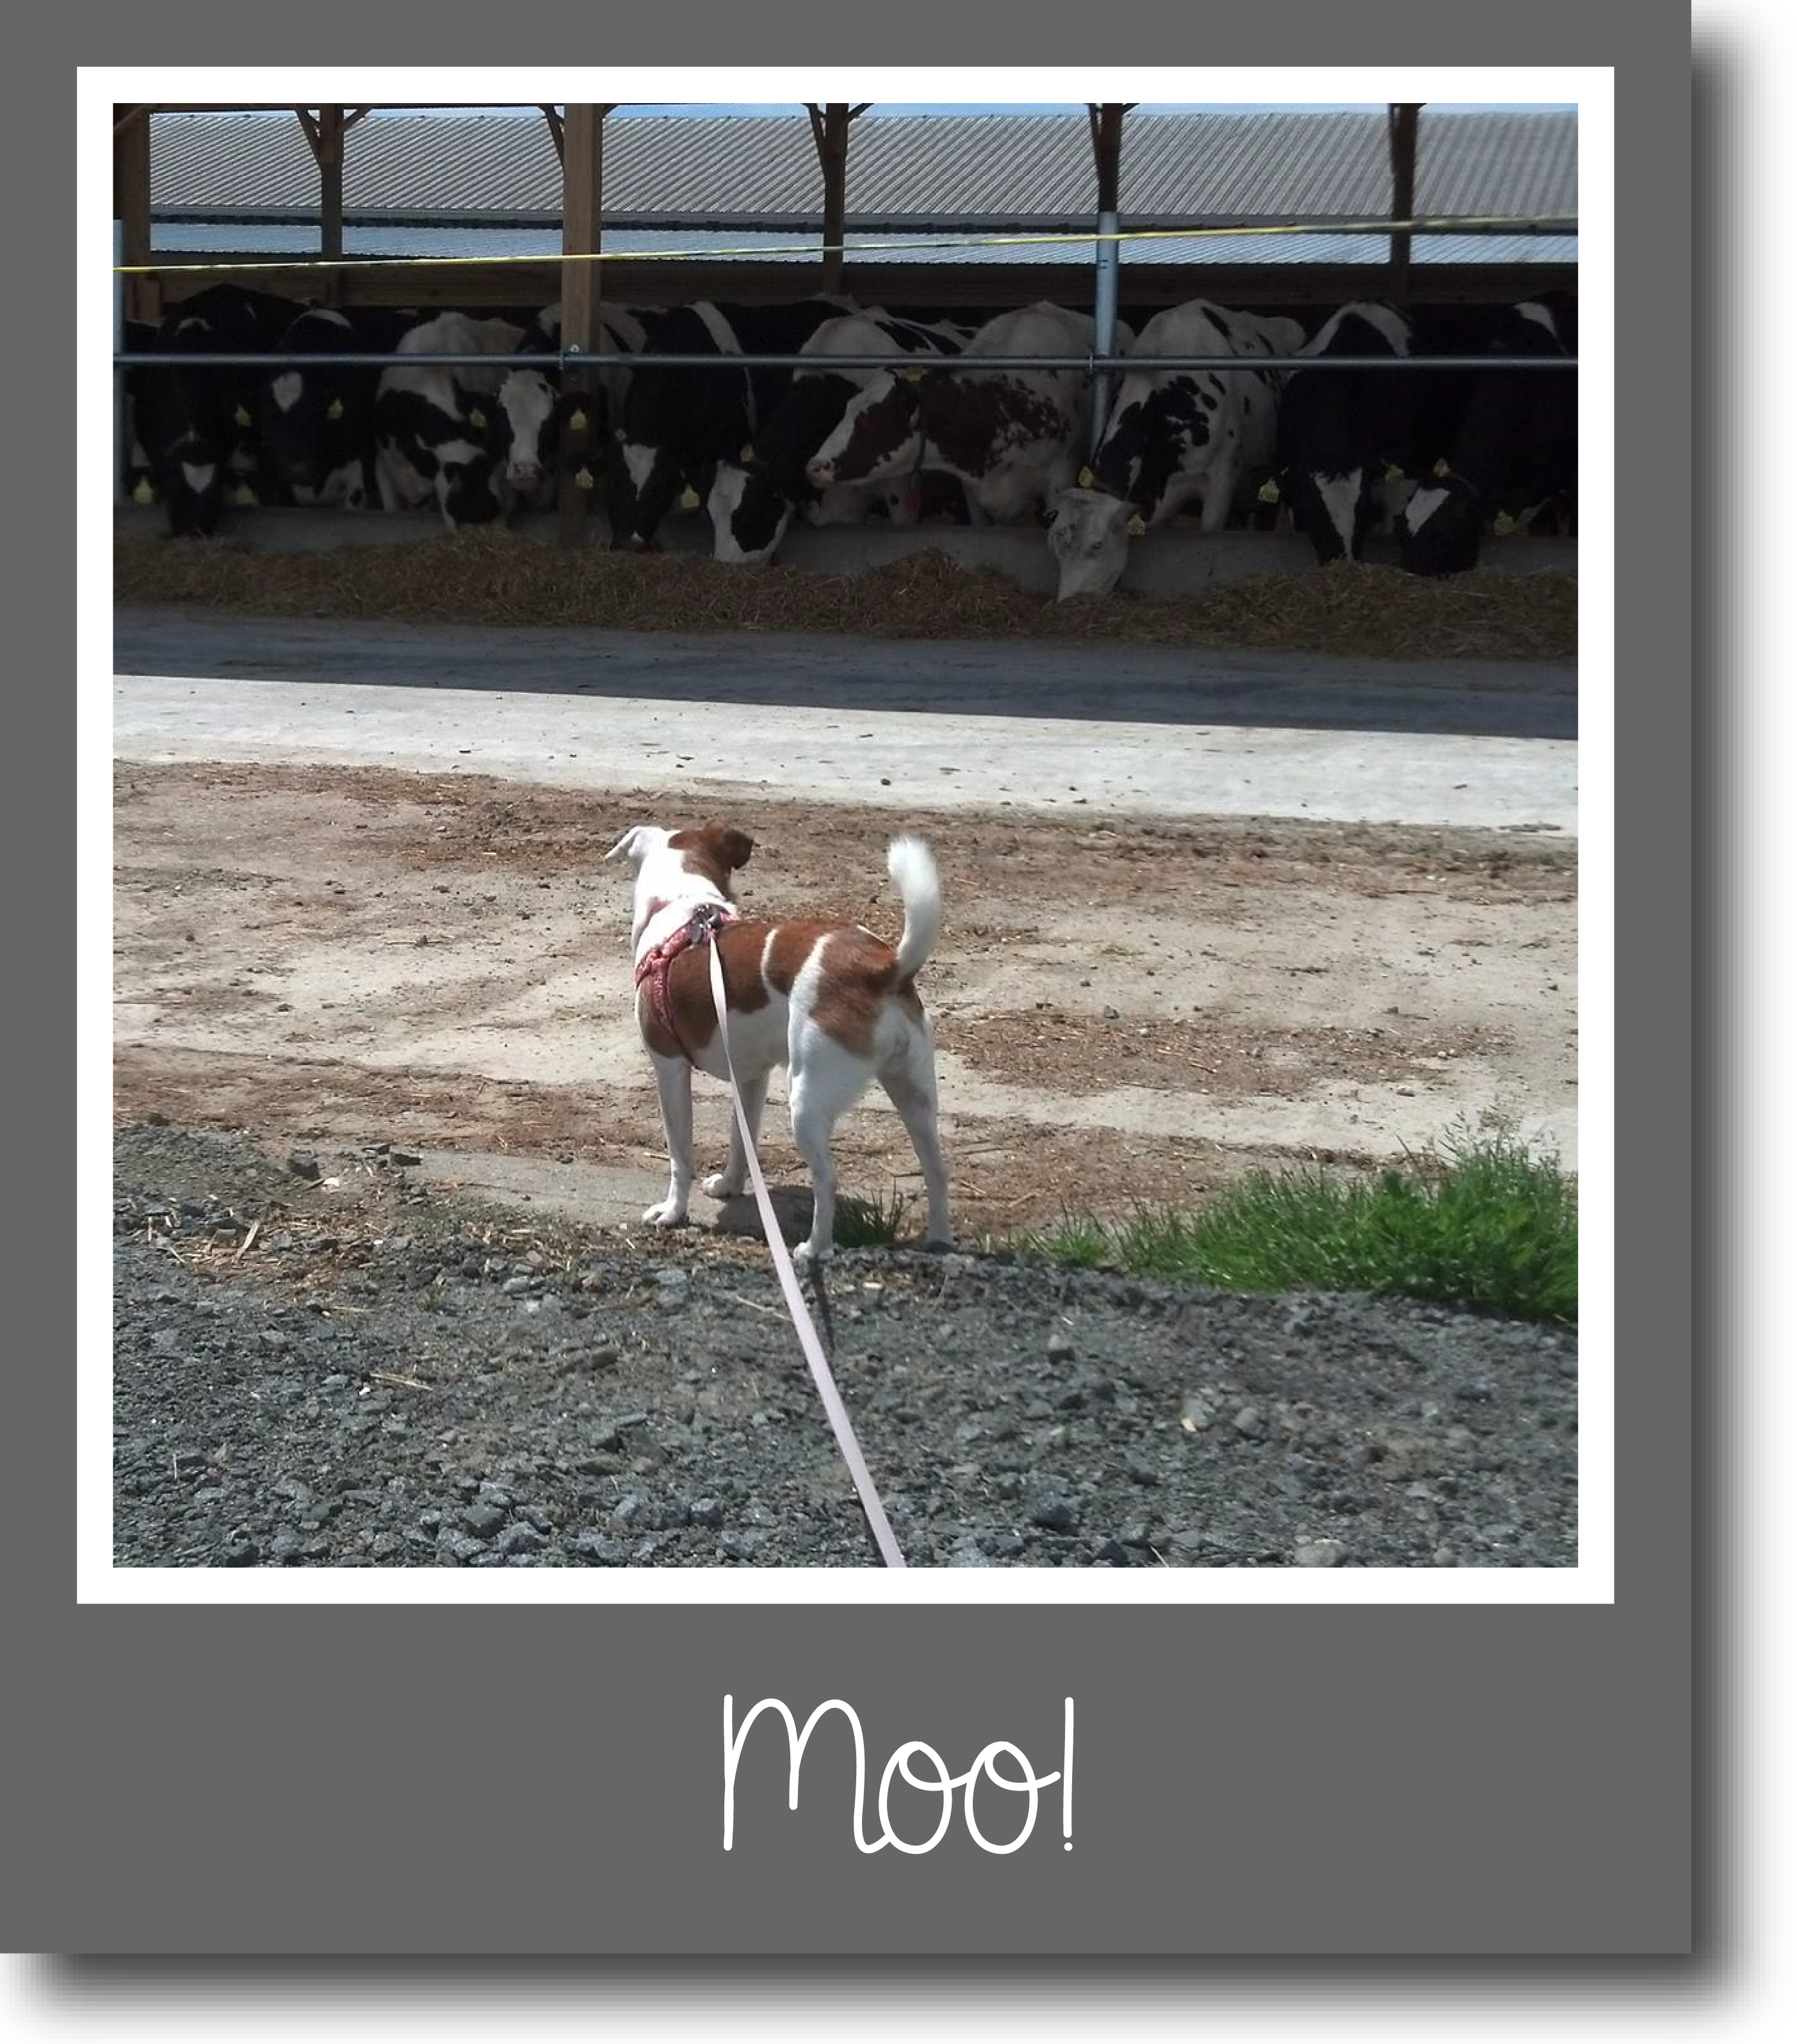 Tilly's Travels - Moo!